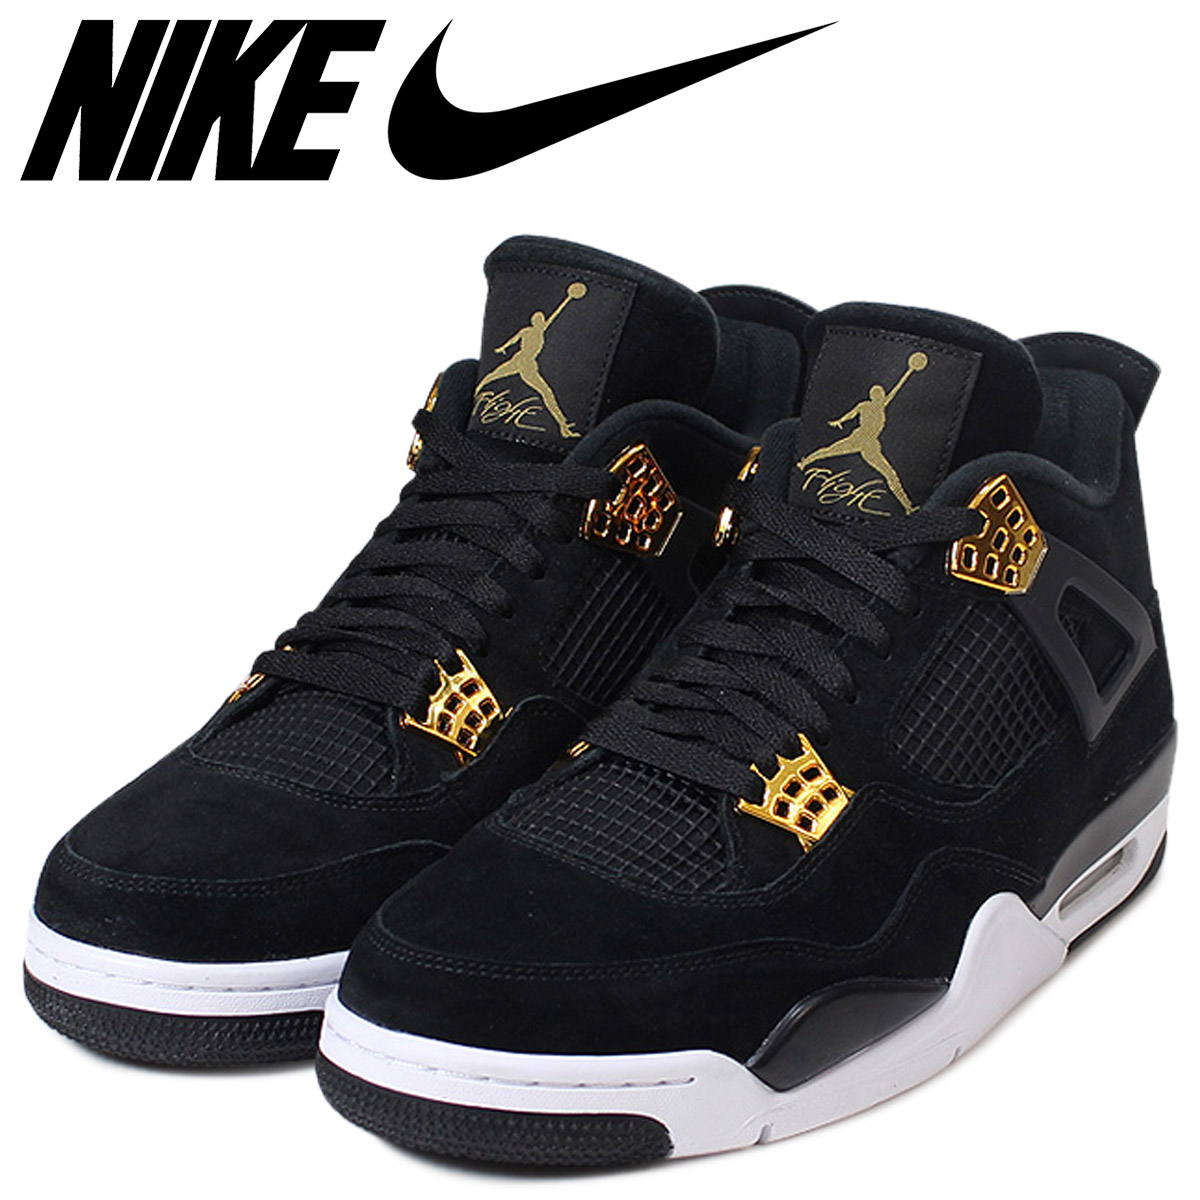 free shipping 24ac6 374bd NIKE Nike Air Jordan 4 nostalgic royalty sneakers AIR JORDAN 4 RETRO  ROYALTY men 308,497-032 black